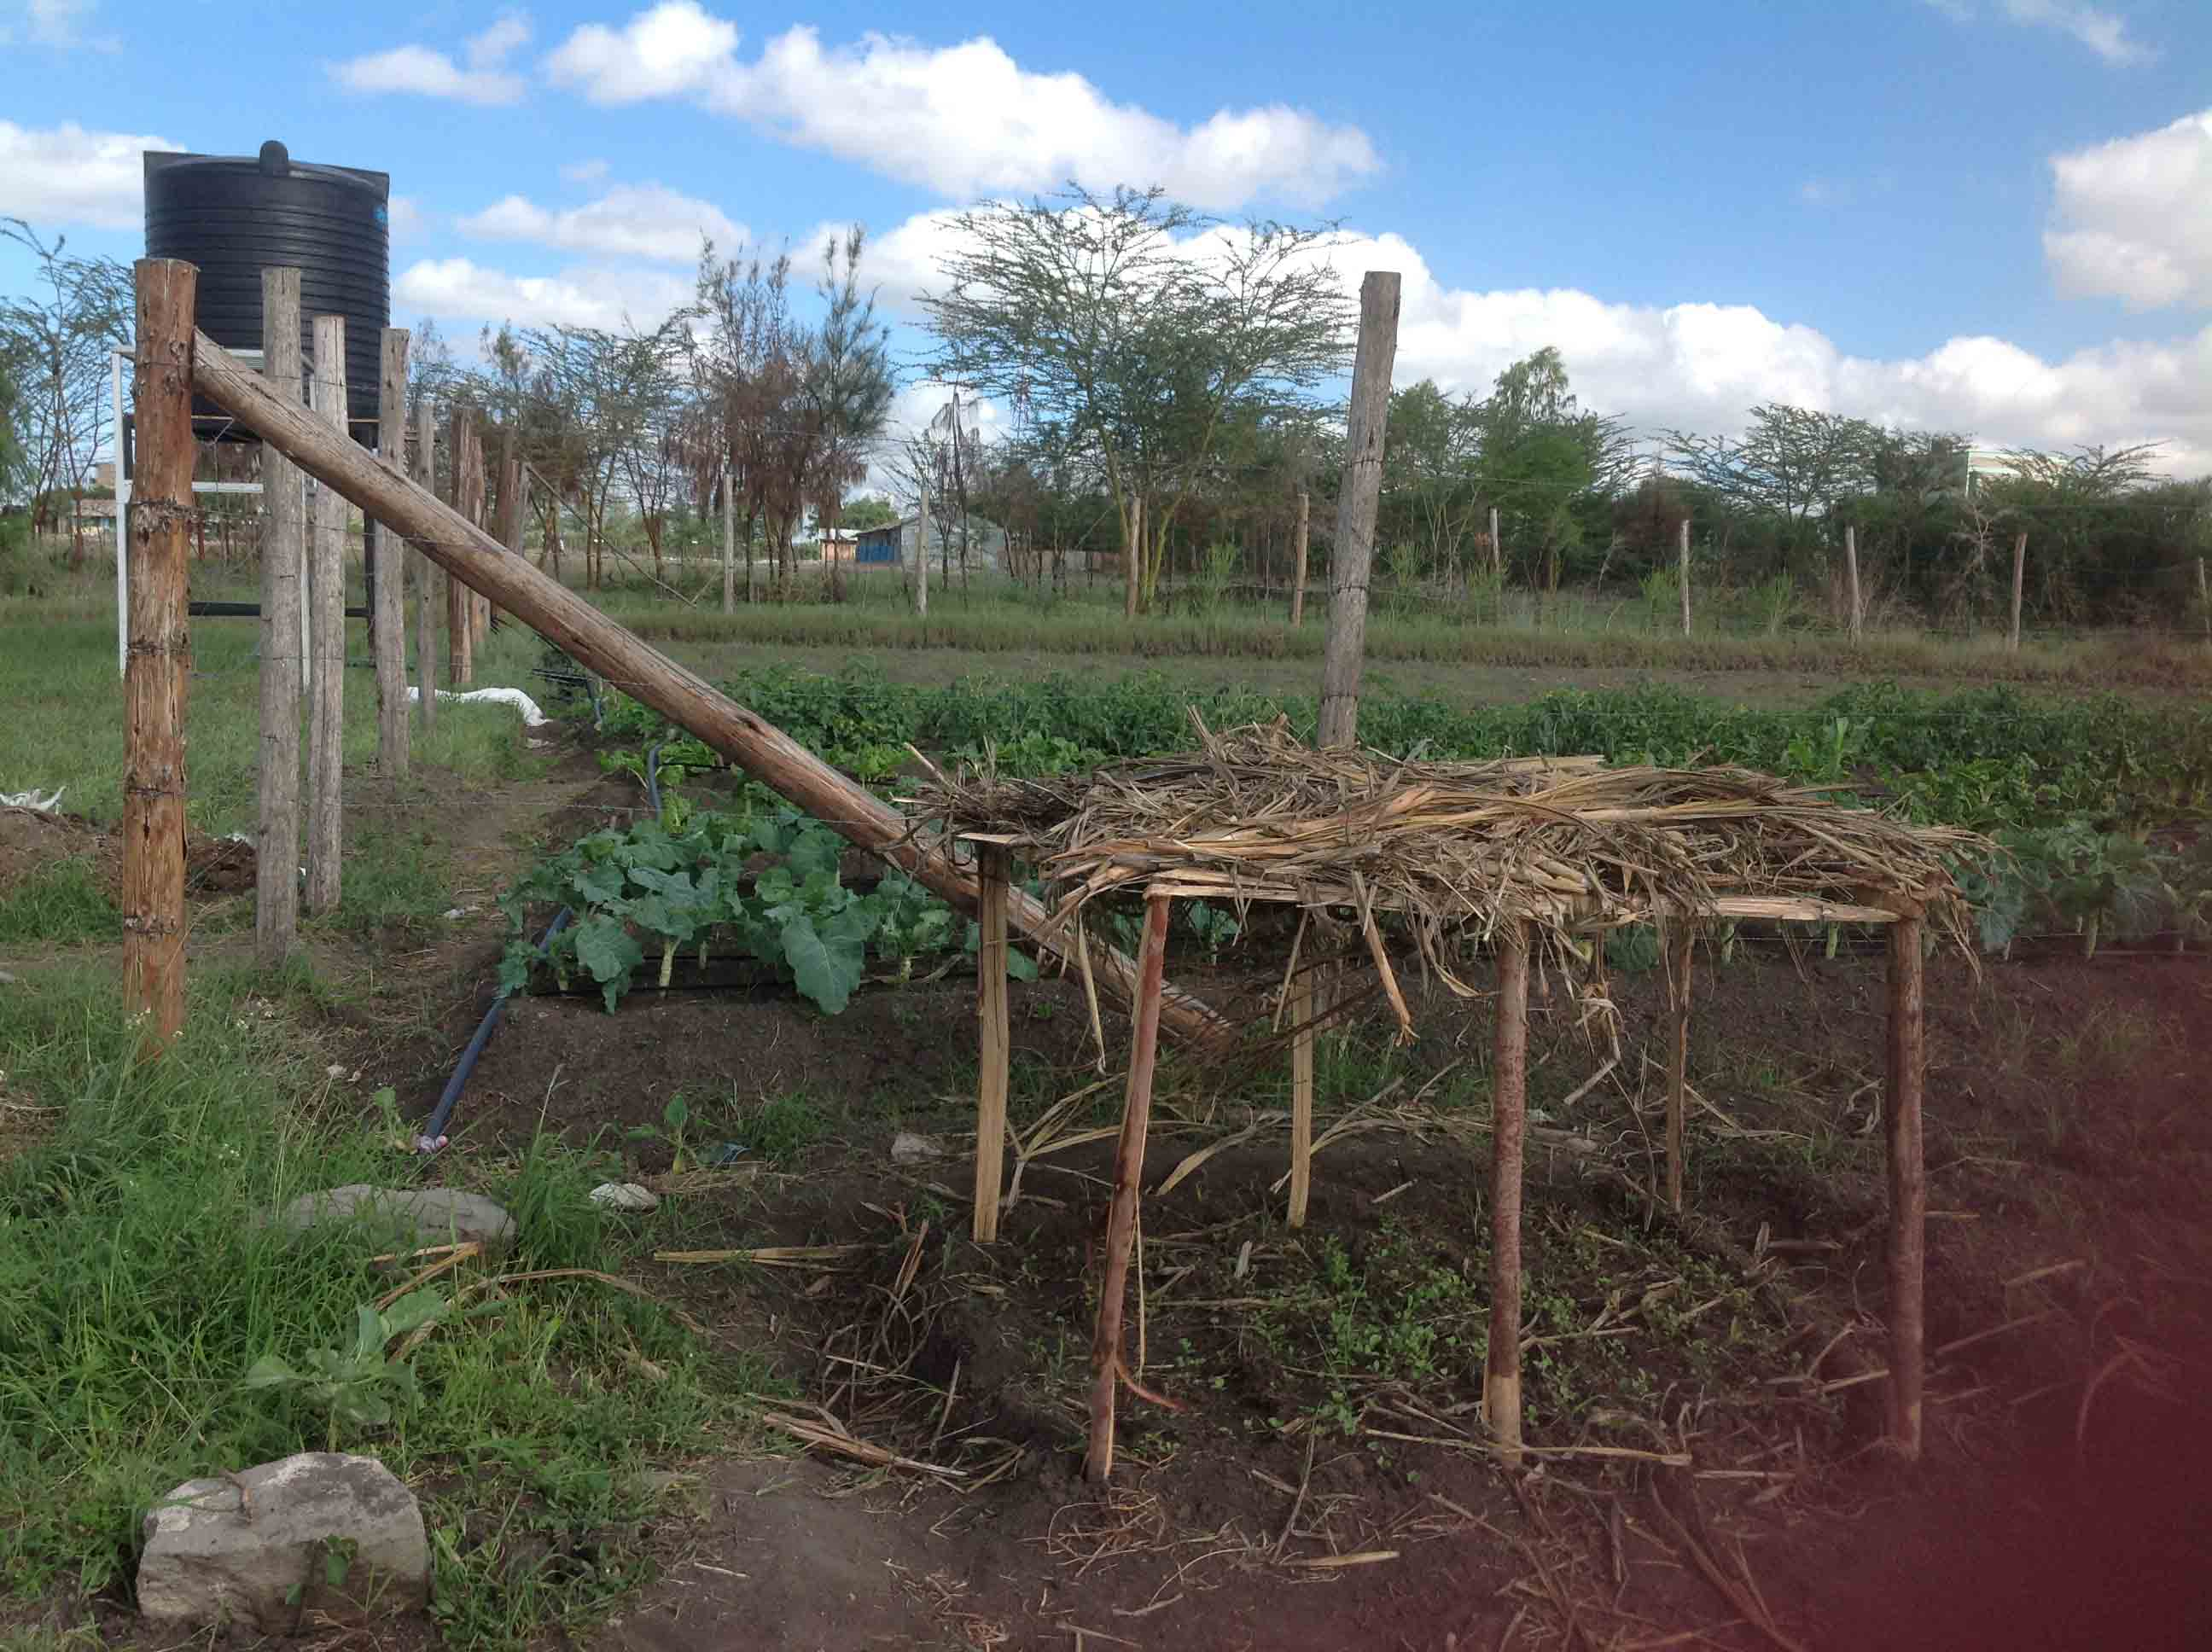 water-tank-and-drip-irrigation-set-for-the-vegetable-garden